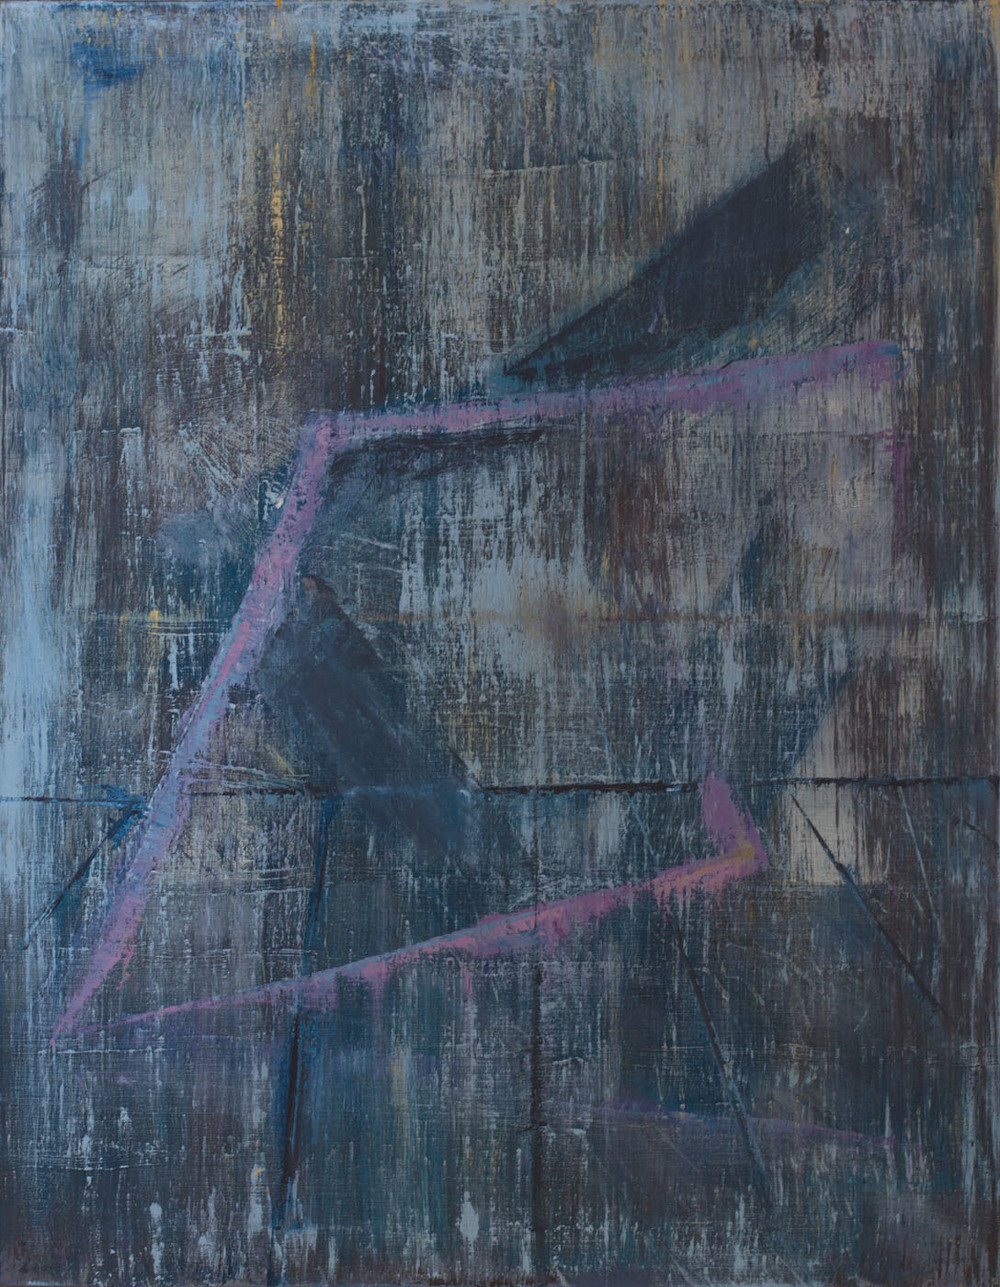 a04, 2013, 126x99 cm, oil on canvas